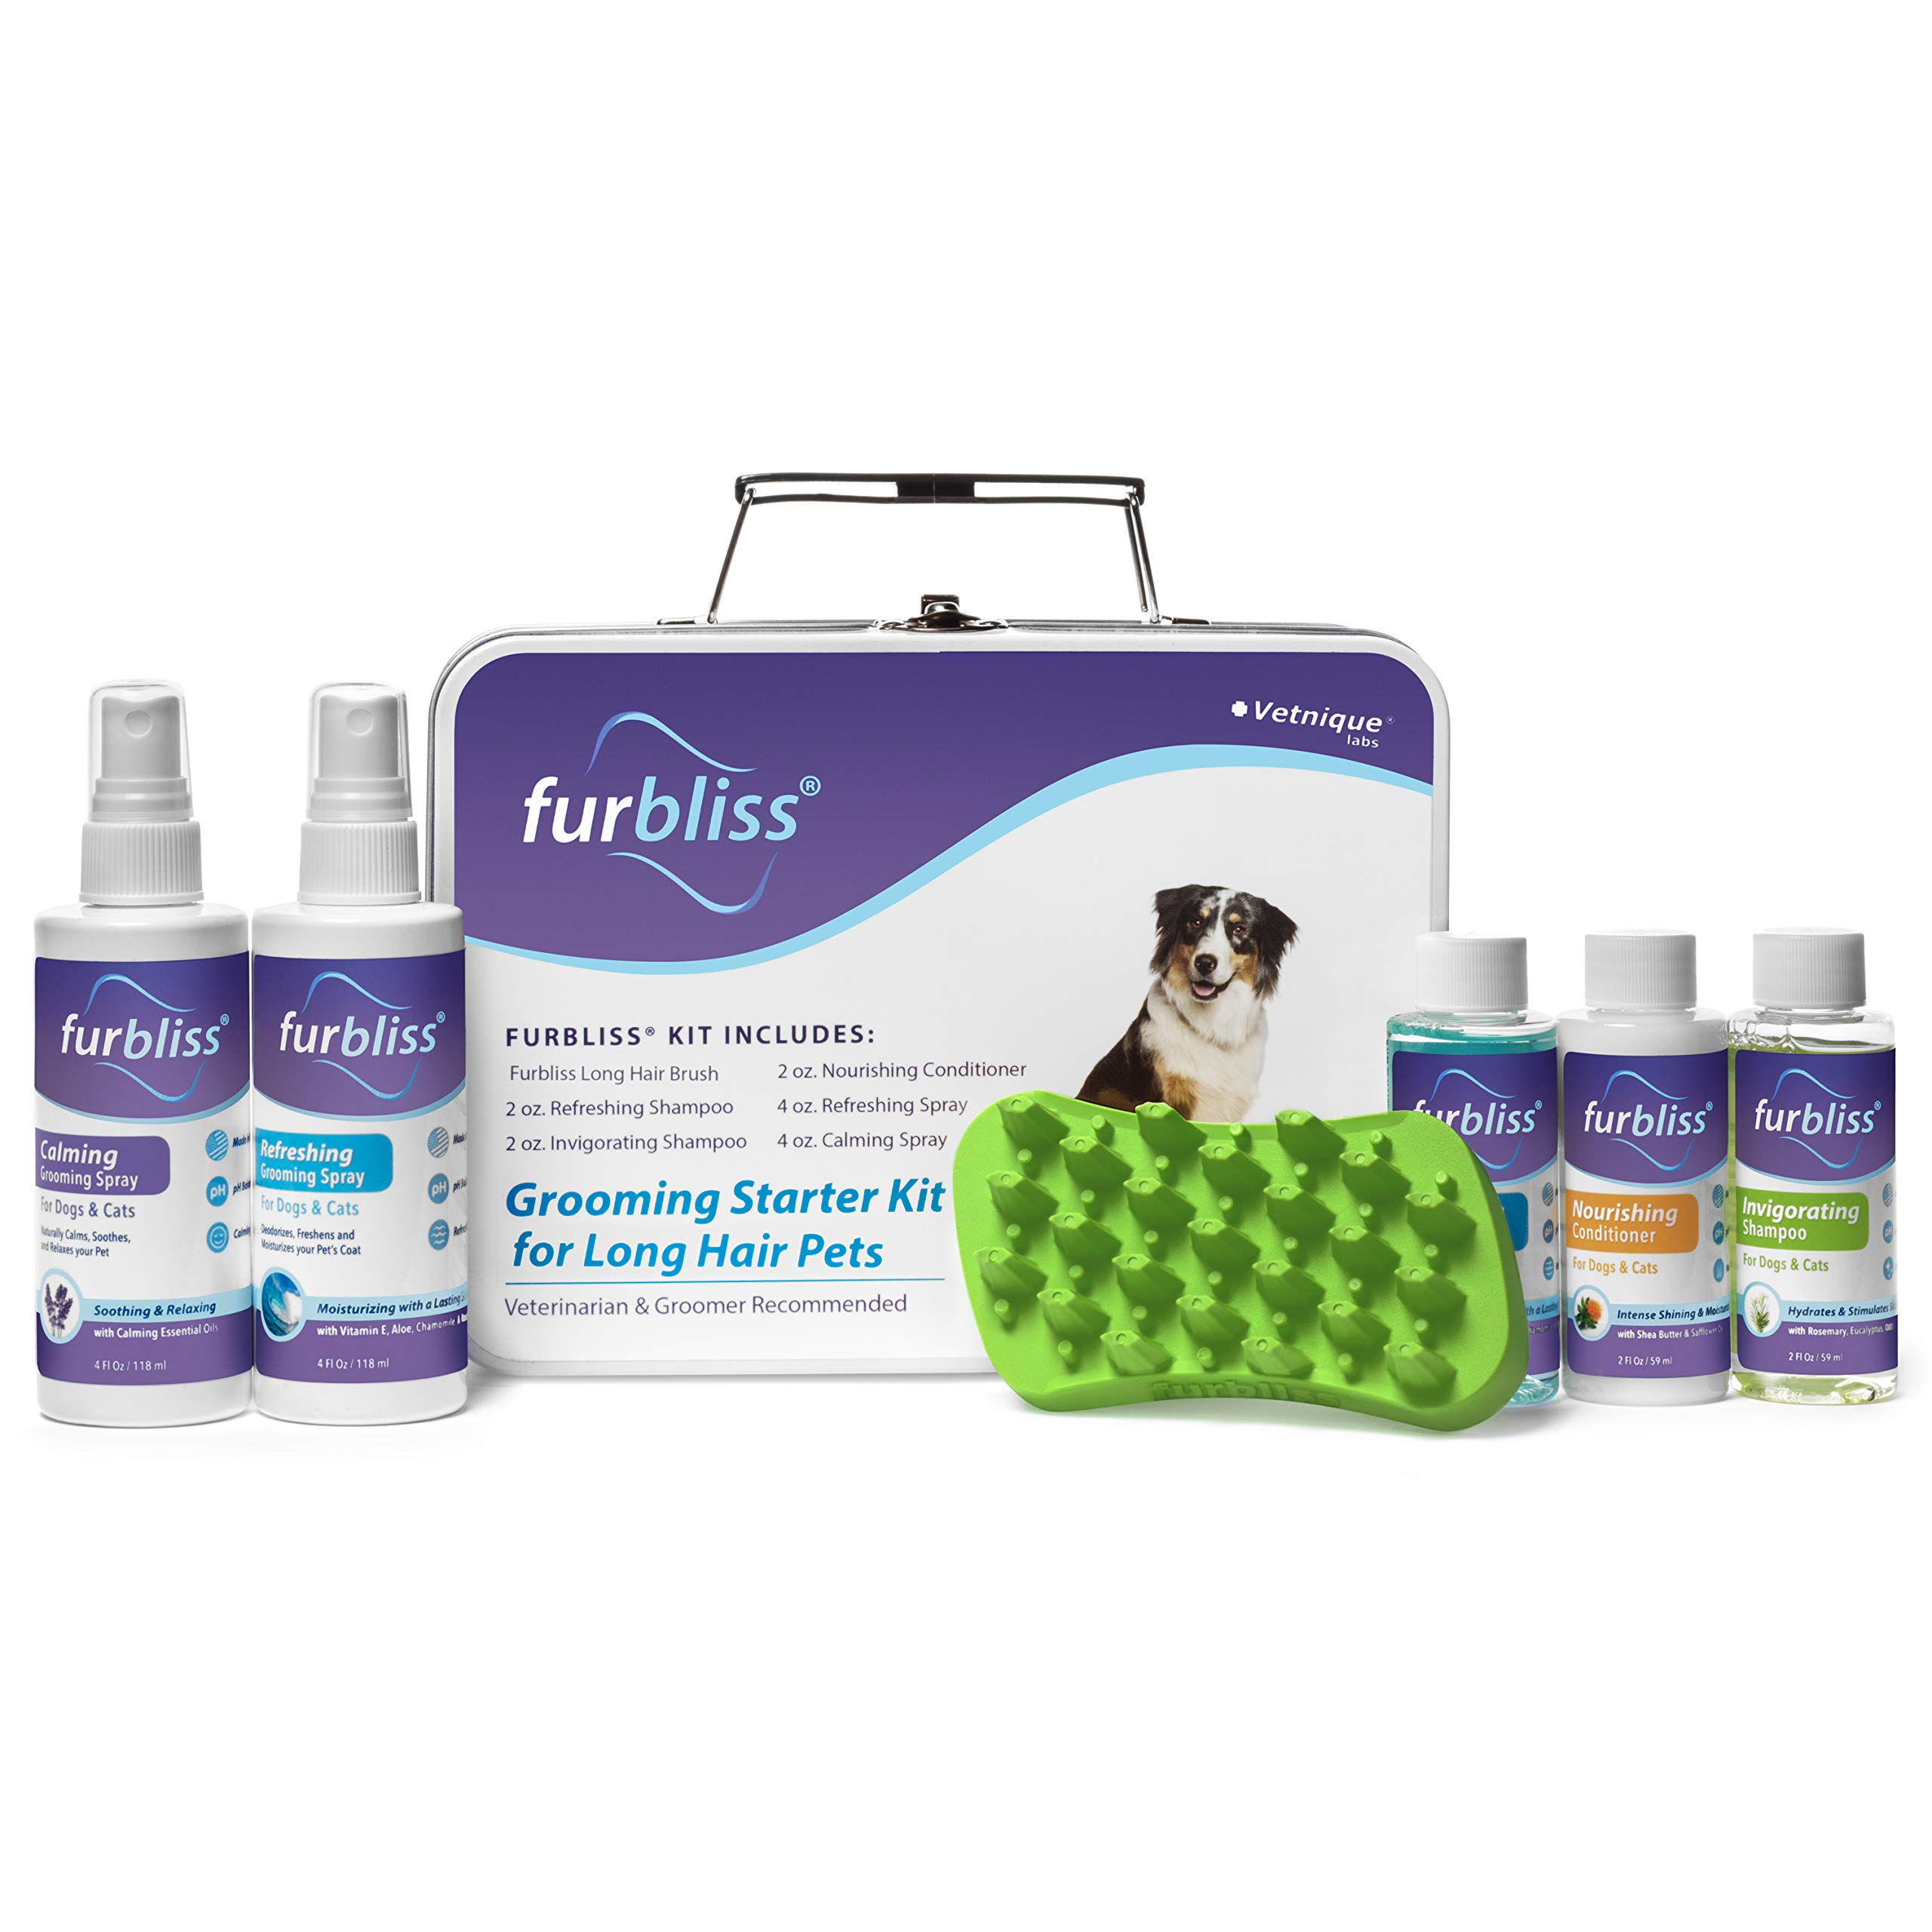 Furbliss Grooming Kit for Dogs, Cats and Pets with Long Hair - Cat/Dog Shampoo, Cat/Dog Conditioner, Cologne Sprays and The Brush Included by Furbliss